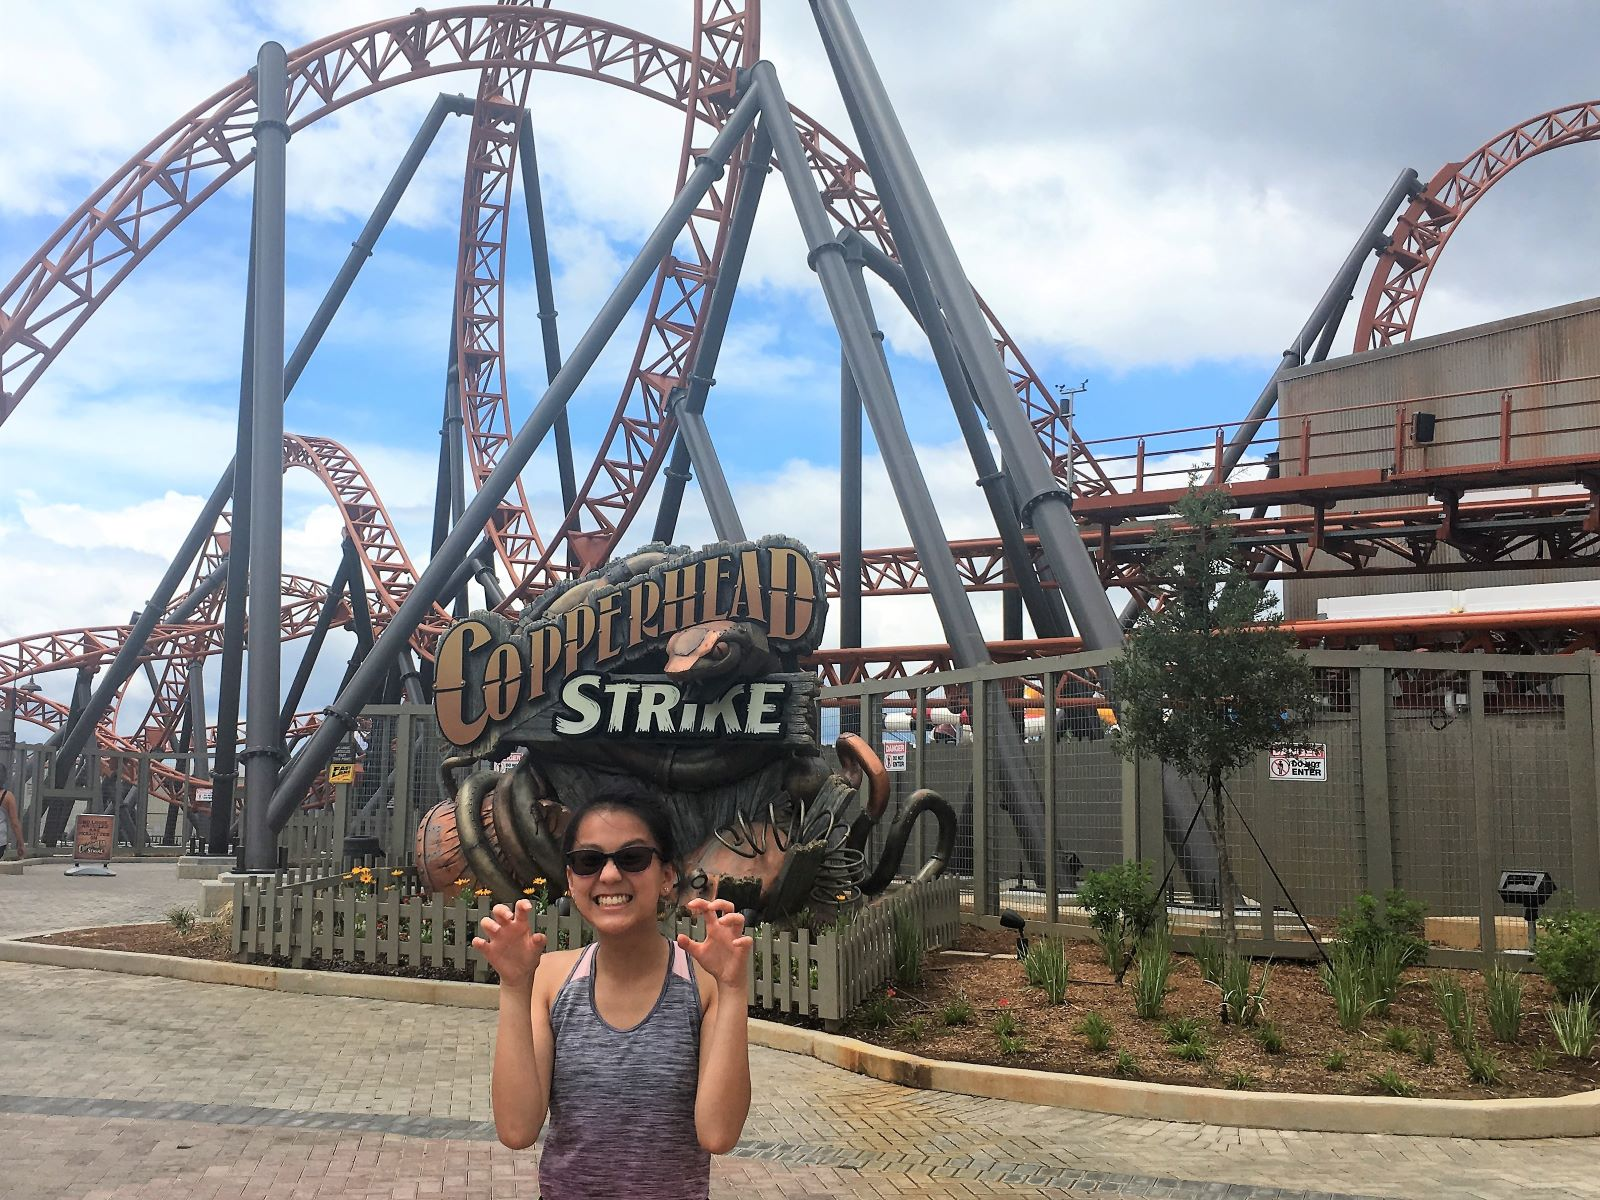 Ellie after riding Copperhead Strike, the newest roller coaster in the Carolinas